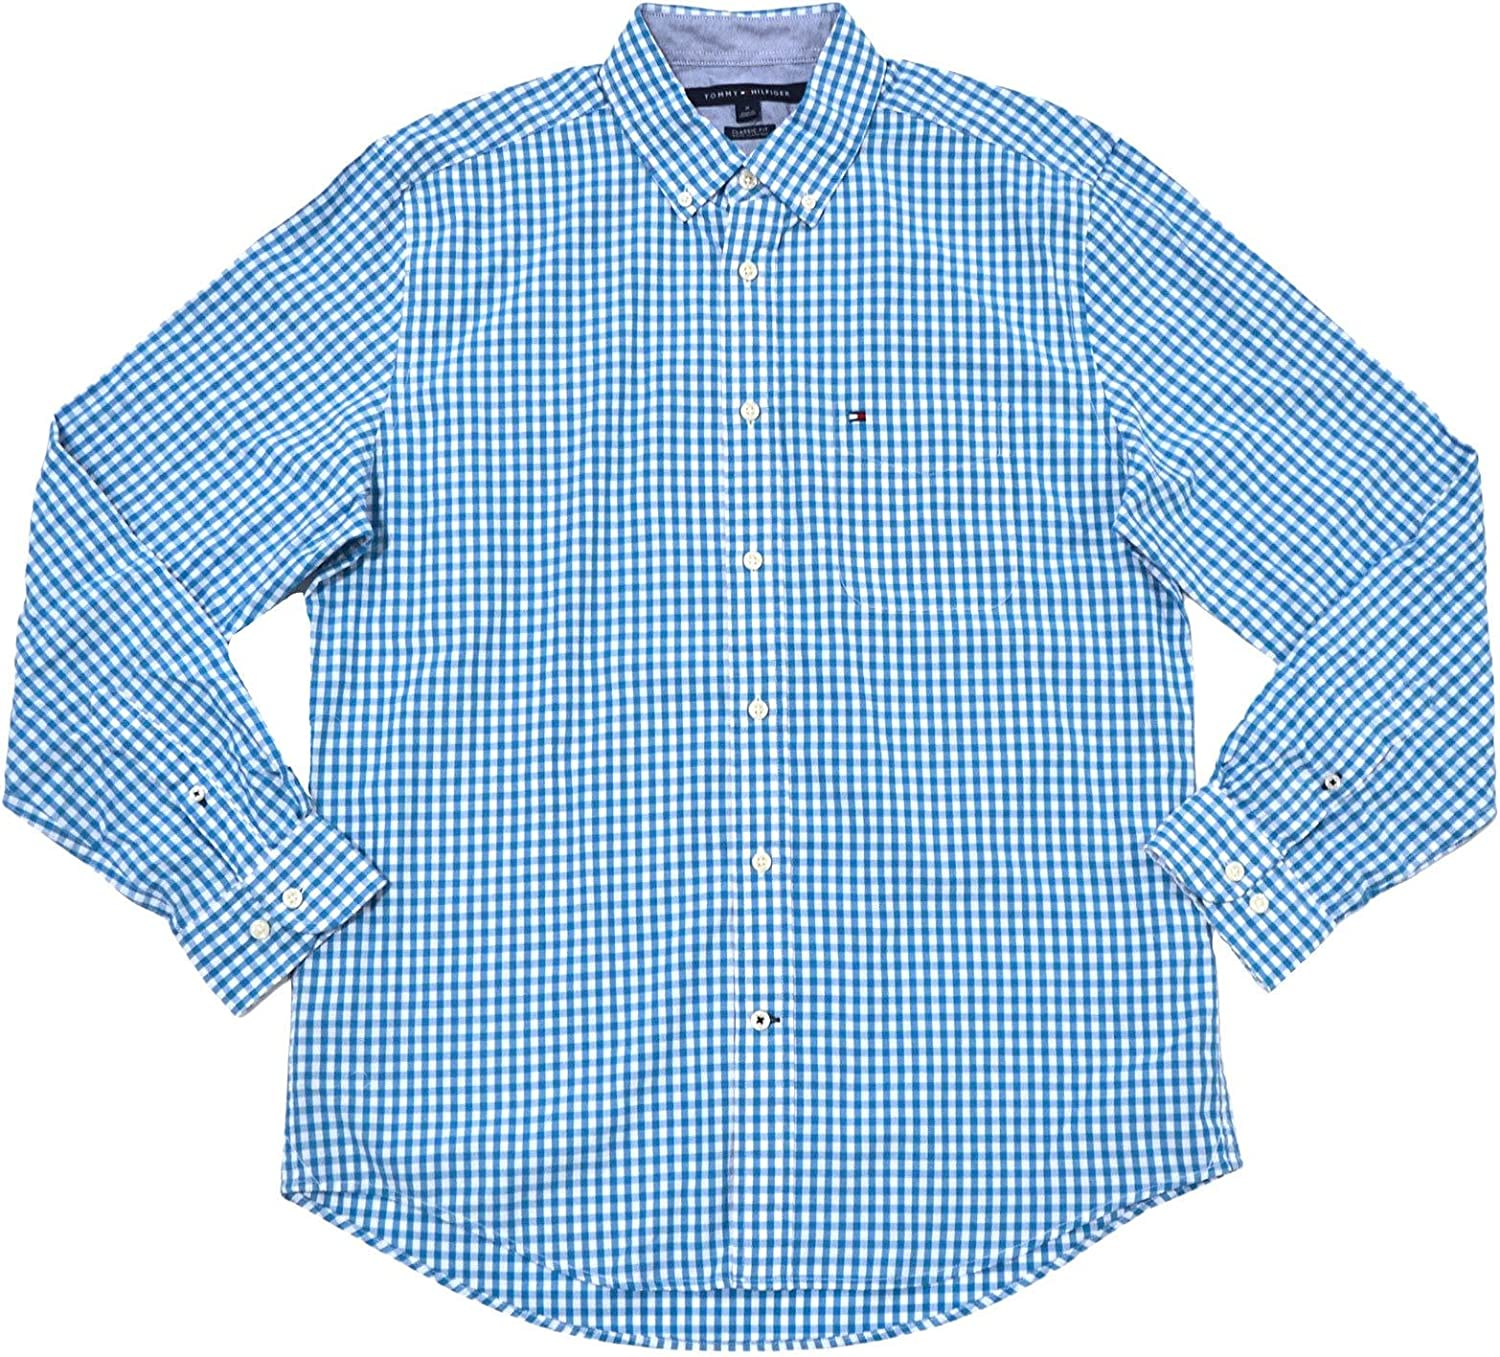 Tommy Hilfiger Mens Classic Fit Long Sleeve Gingham Buttondown